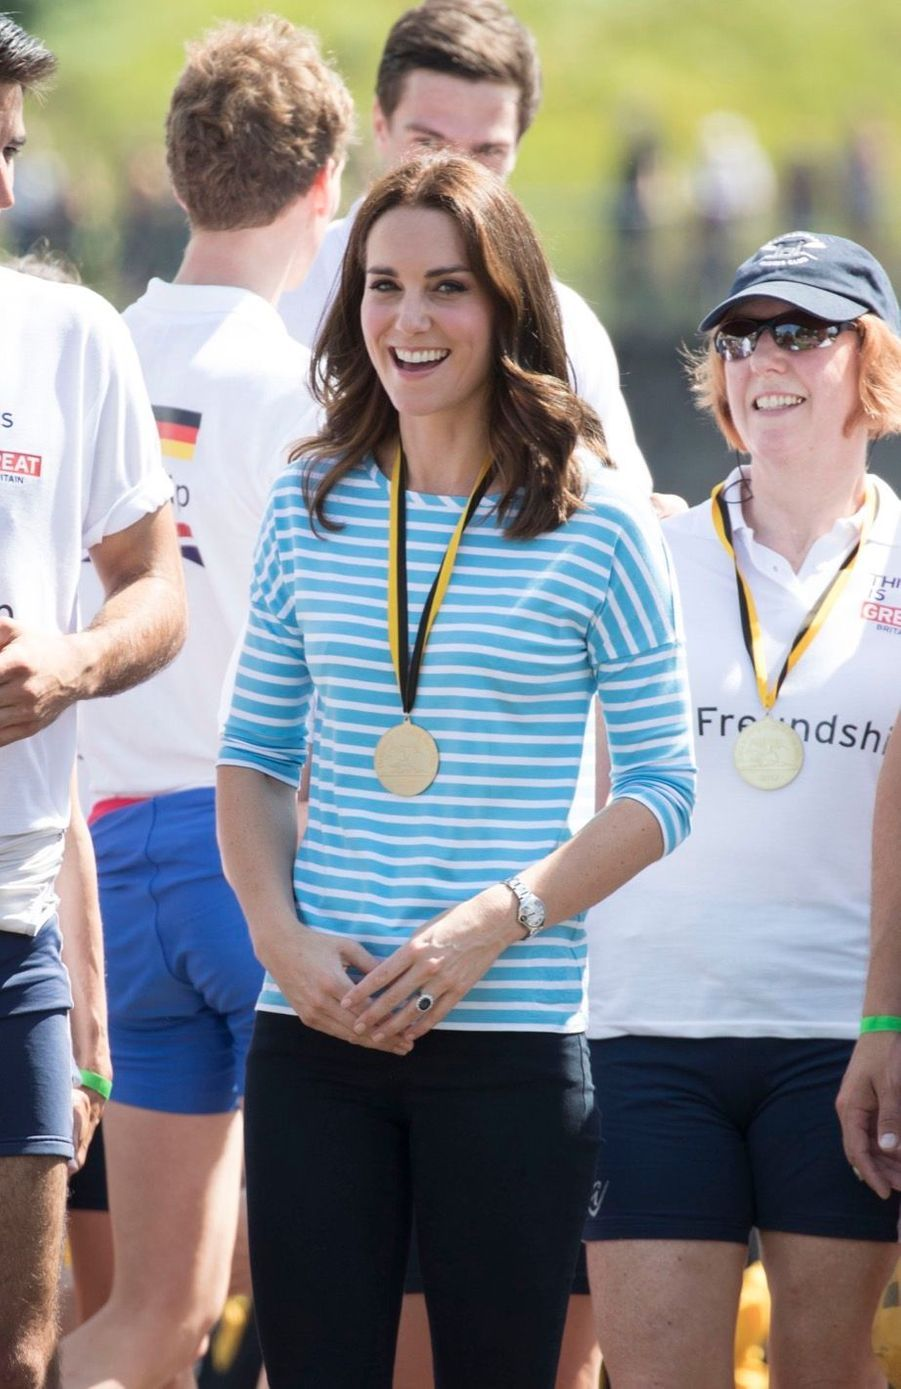 Kate Middleton Et William Font De L'aviron À Heidelberg En Allemagne 7